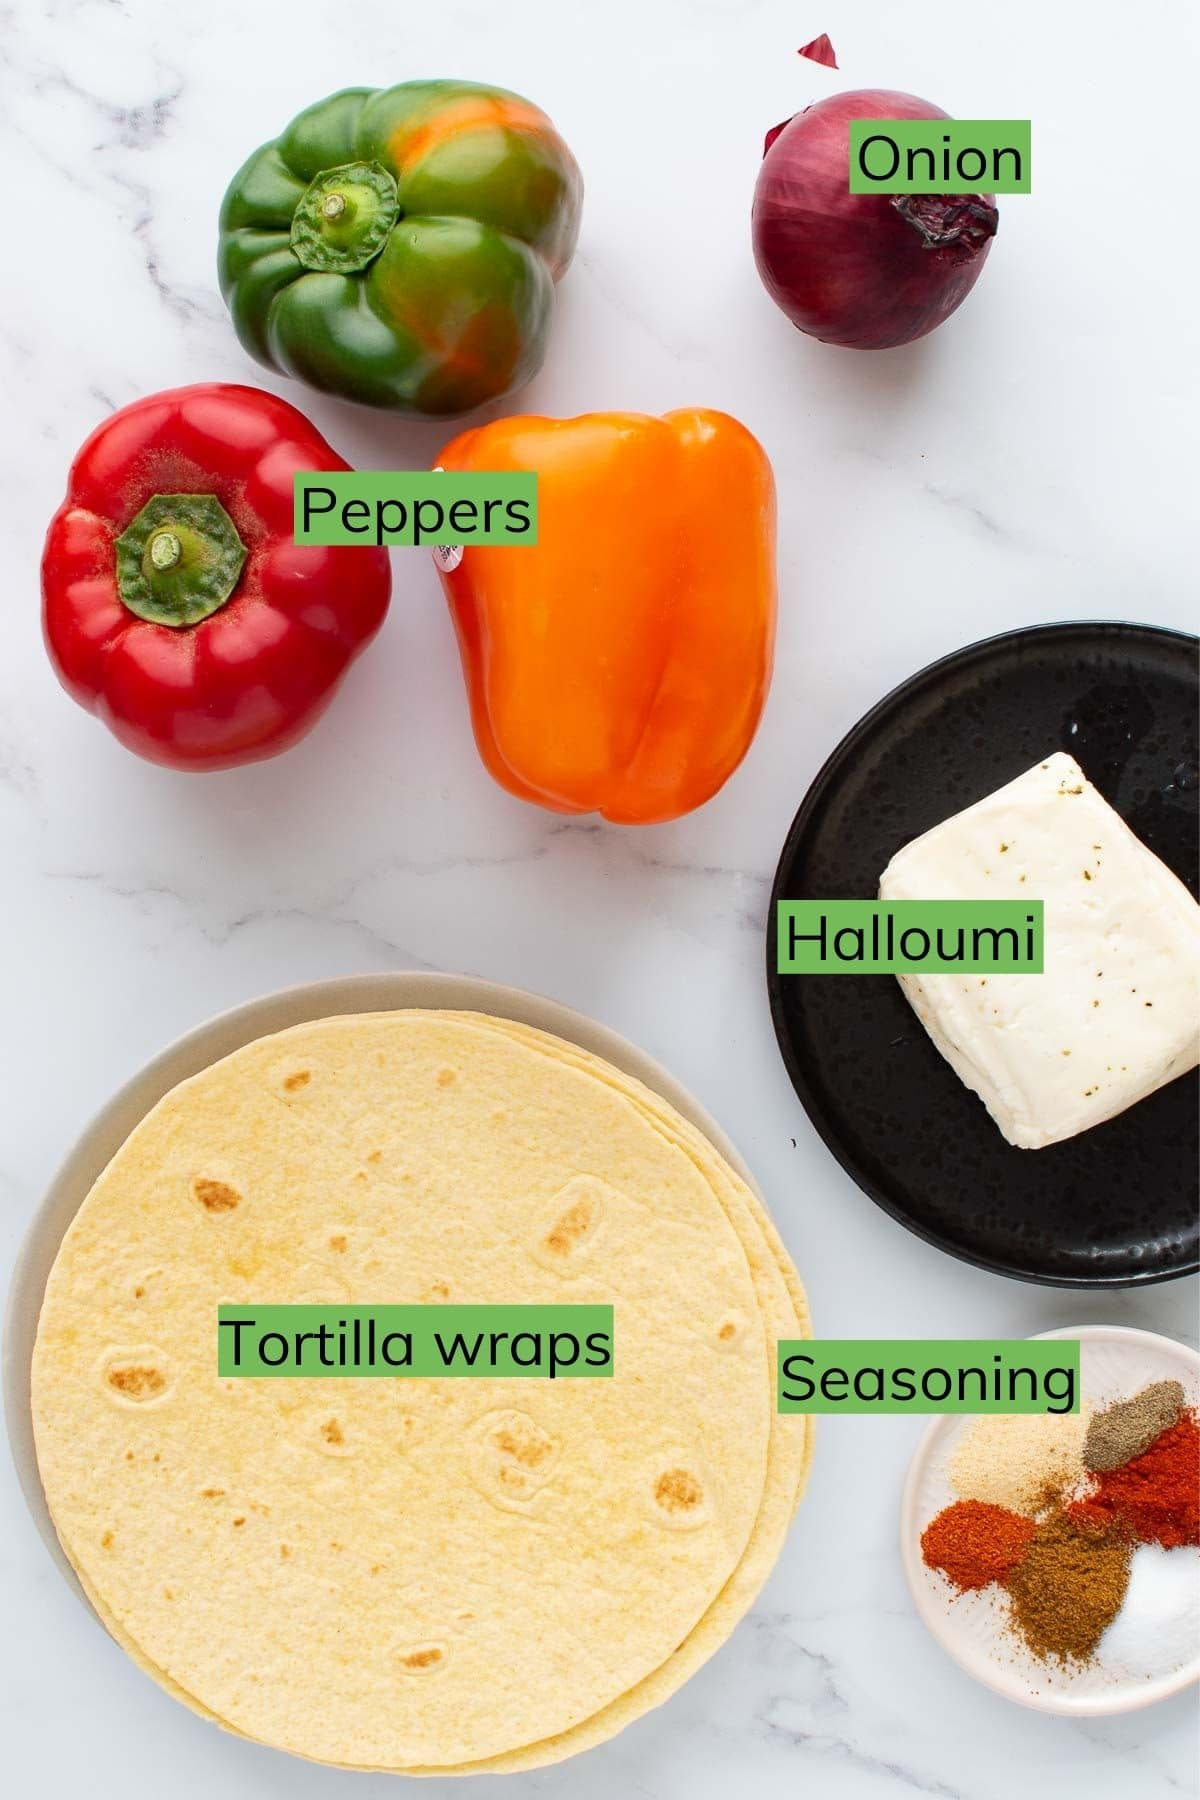 The ingredients needed to make halloumi cheese fajitas laid out on a table.